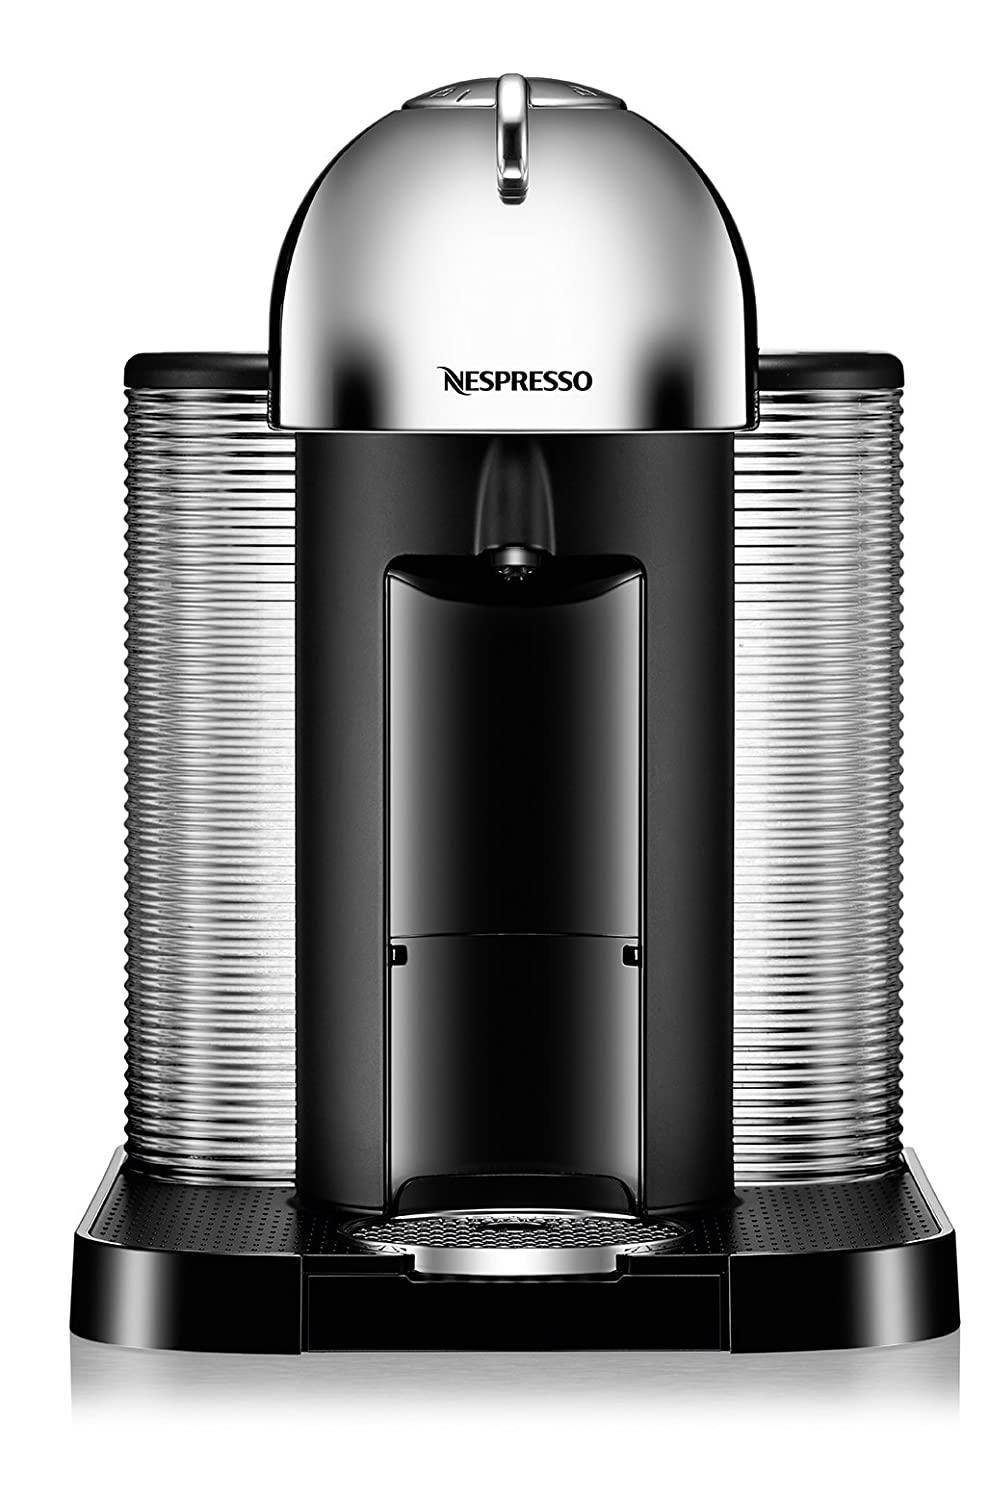 Breville-Nespresso USA BNV250CRO1BUC1 Vertuo Coffee and Espresso Machine, Bundle – Chrome